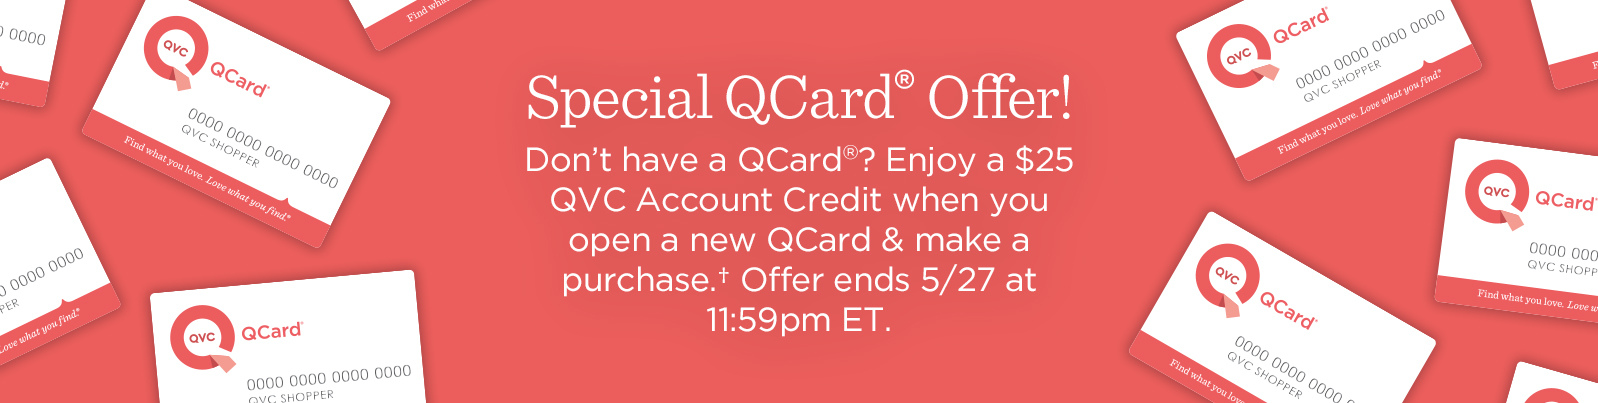 Special QCard® Offer Don't have a QCard®? Enjoy a $25 QVC Account Credit when you open a new QCard & make a purchase.† Offer ends 5/31 at 11:59pm ET.